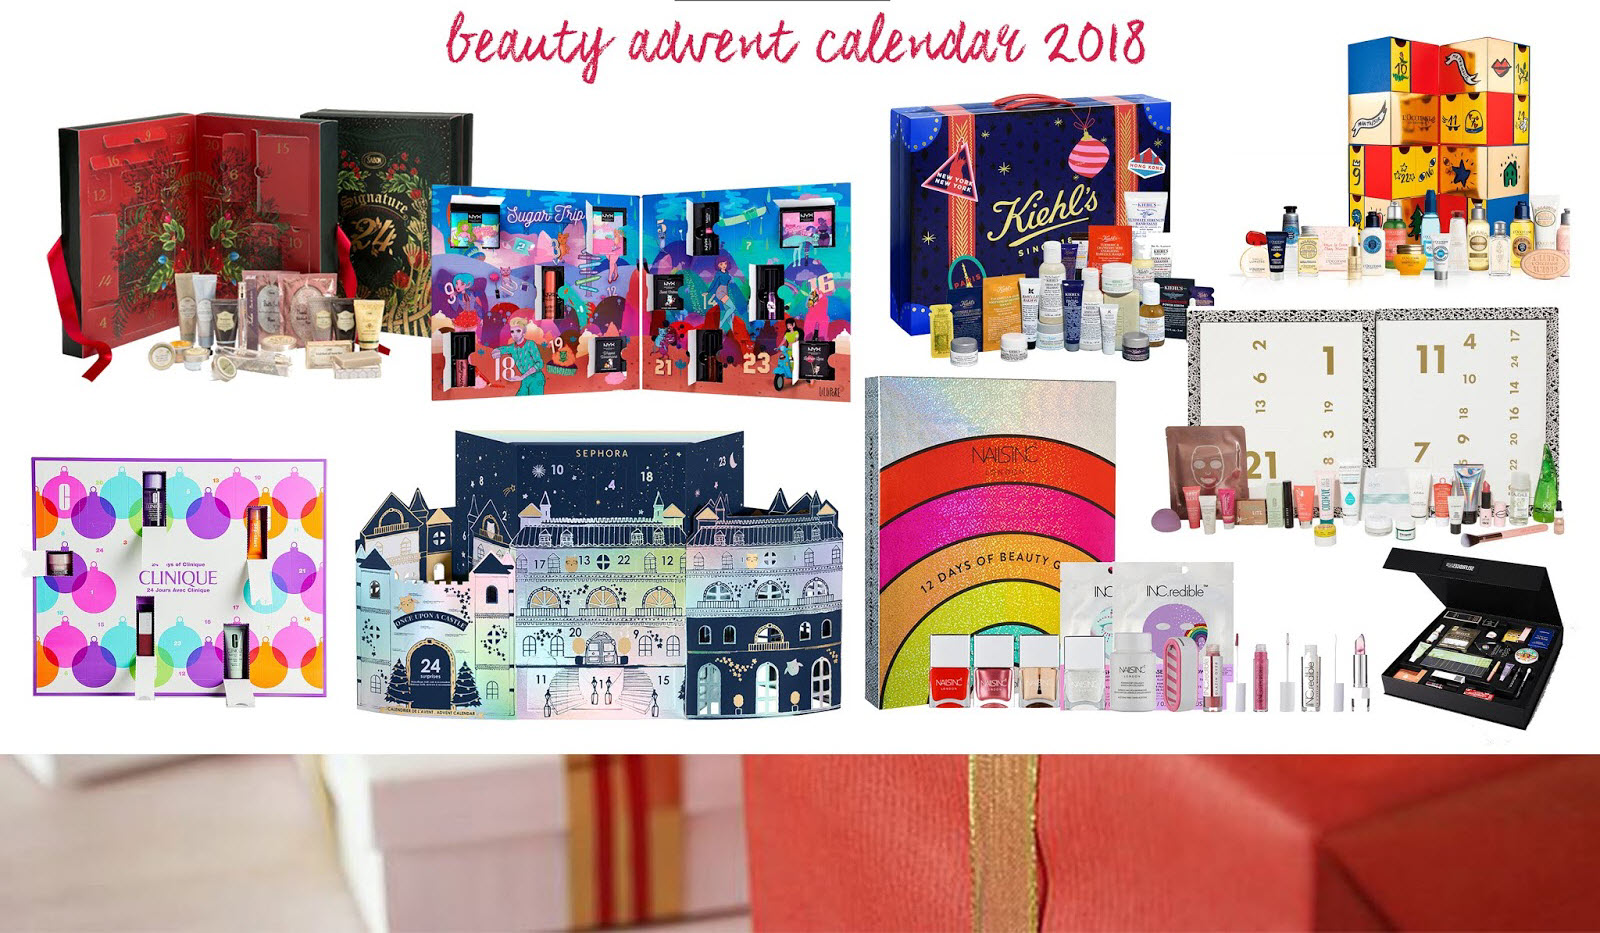 Malaysia Search Date 2018 11 15 Tcash Vaganza 35 Viva Skin Food Cream 30 G Jingle Bells Bell All The Way This Year Has Been A Busy One Even For Advent Calendar Department With Variety Of Offerings Form